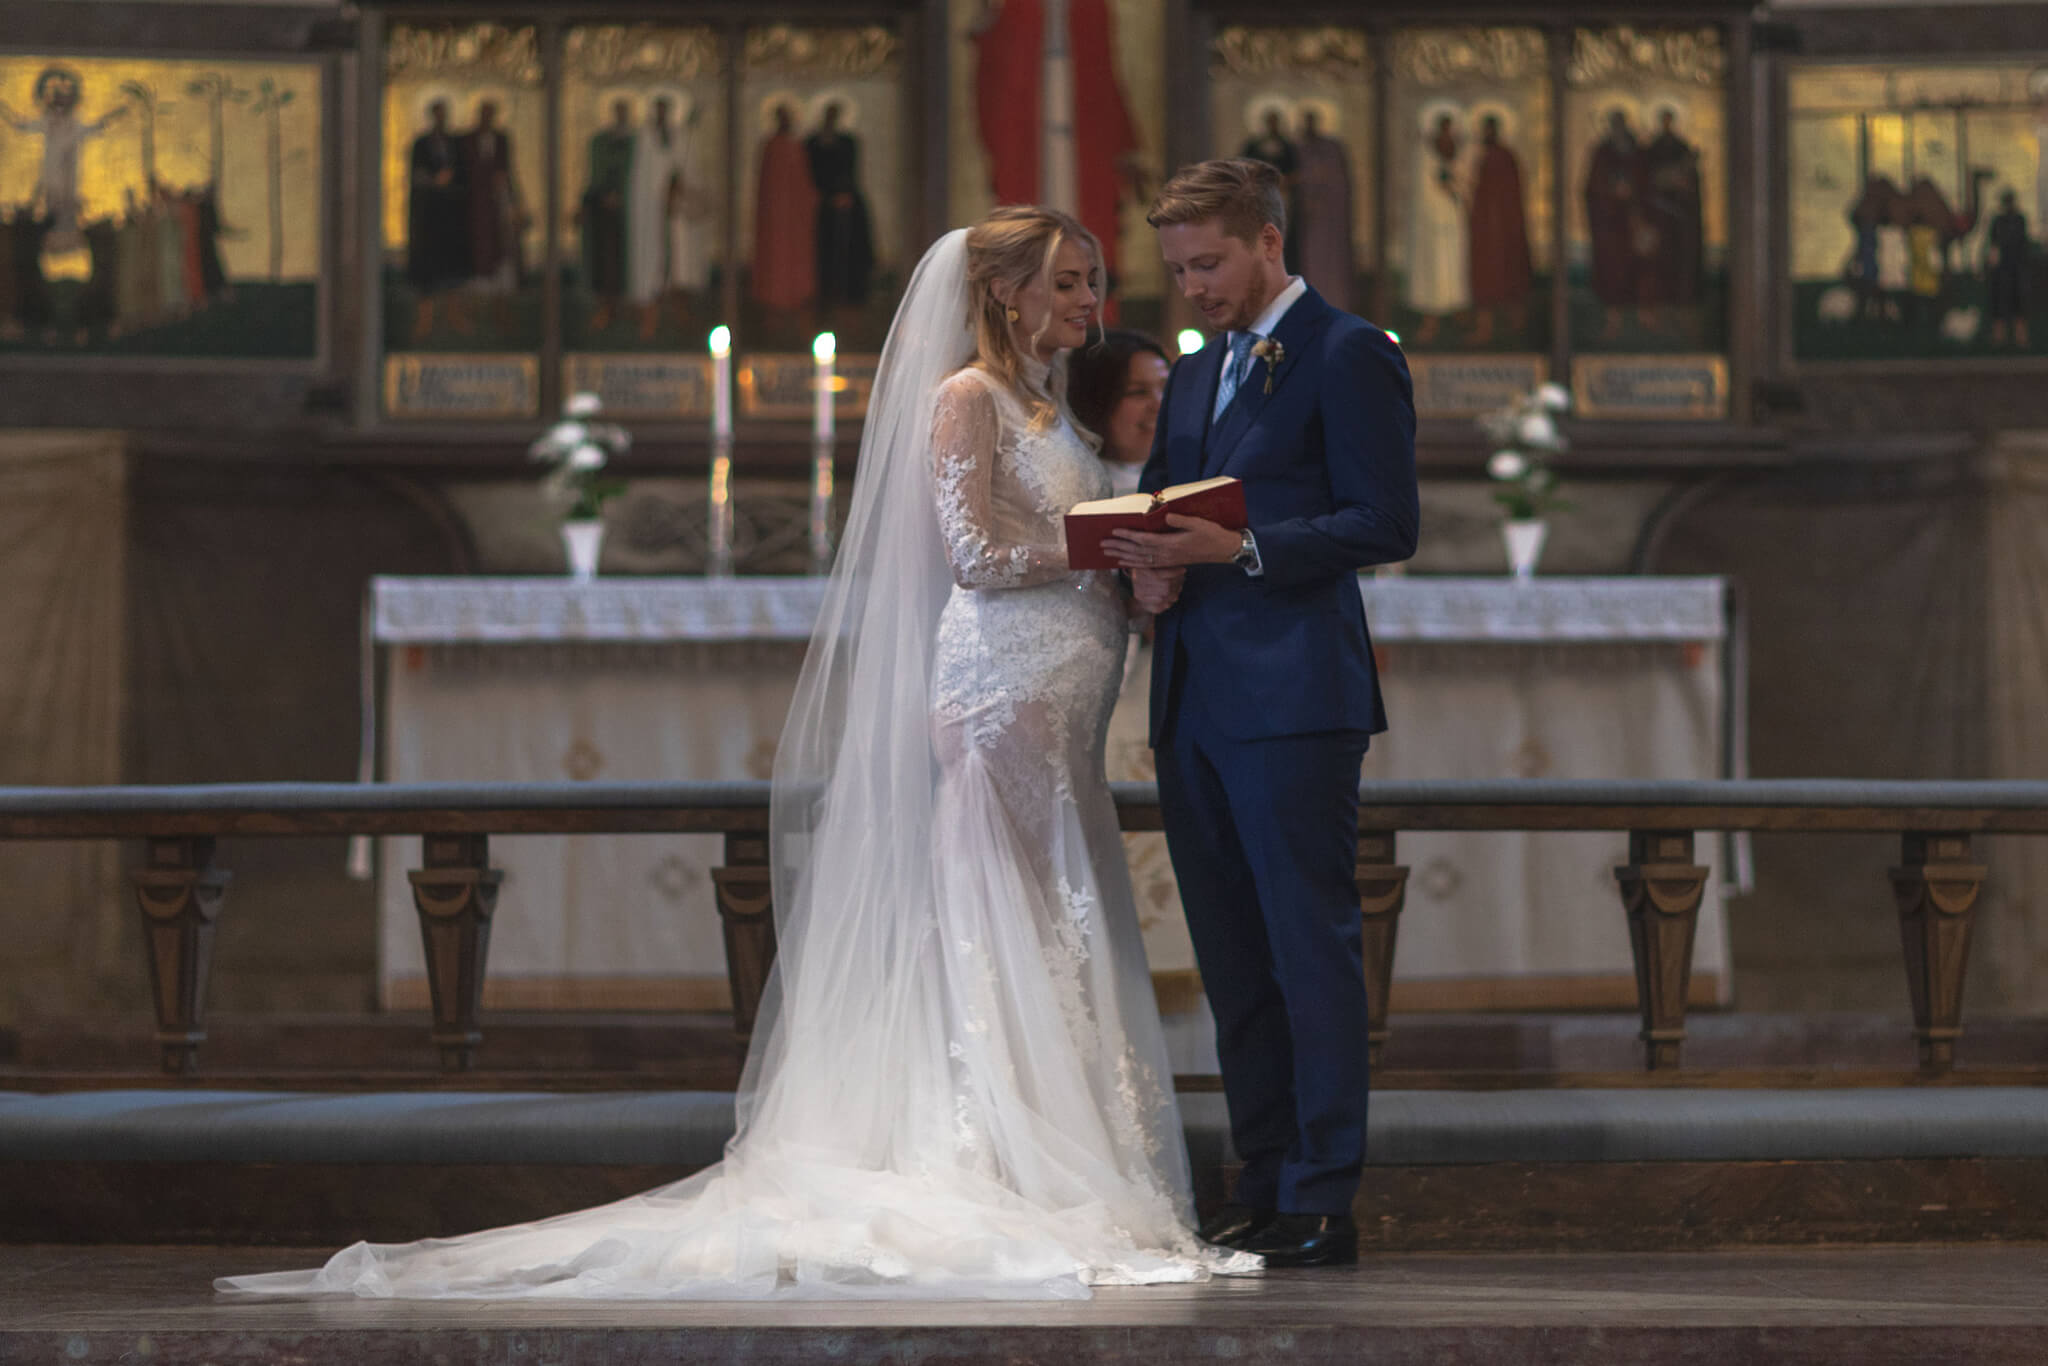 Exciting Bridal Moment - Exchanging wedding Vows